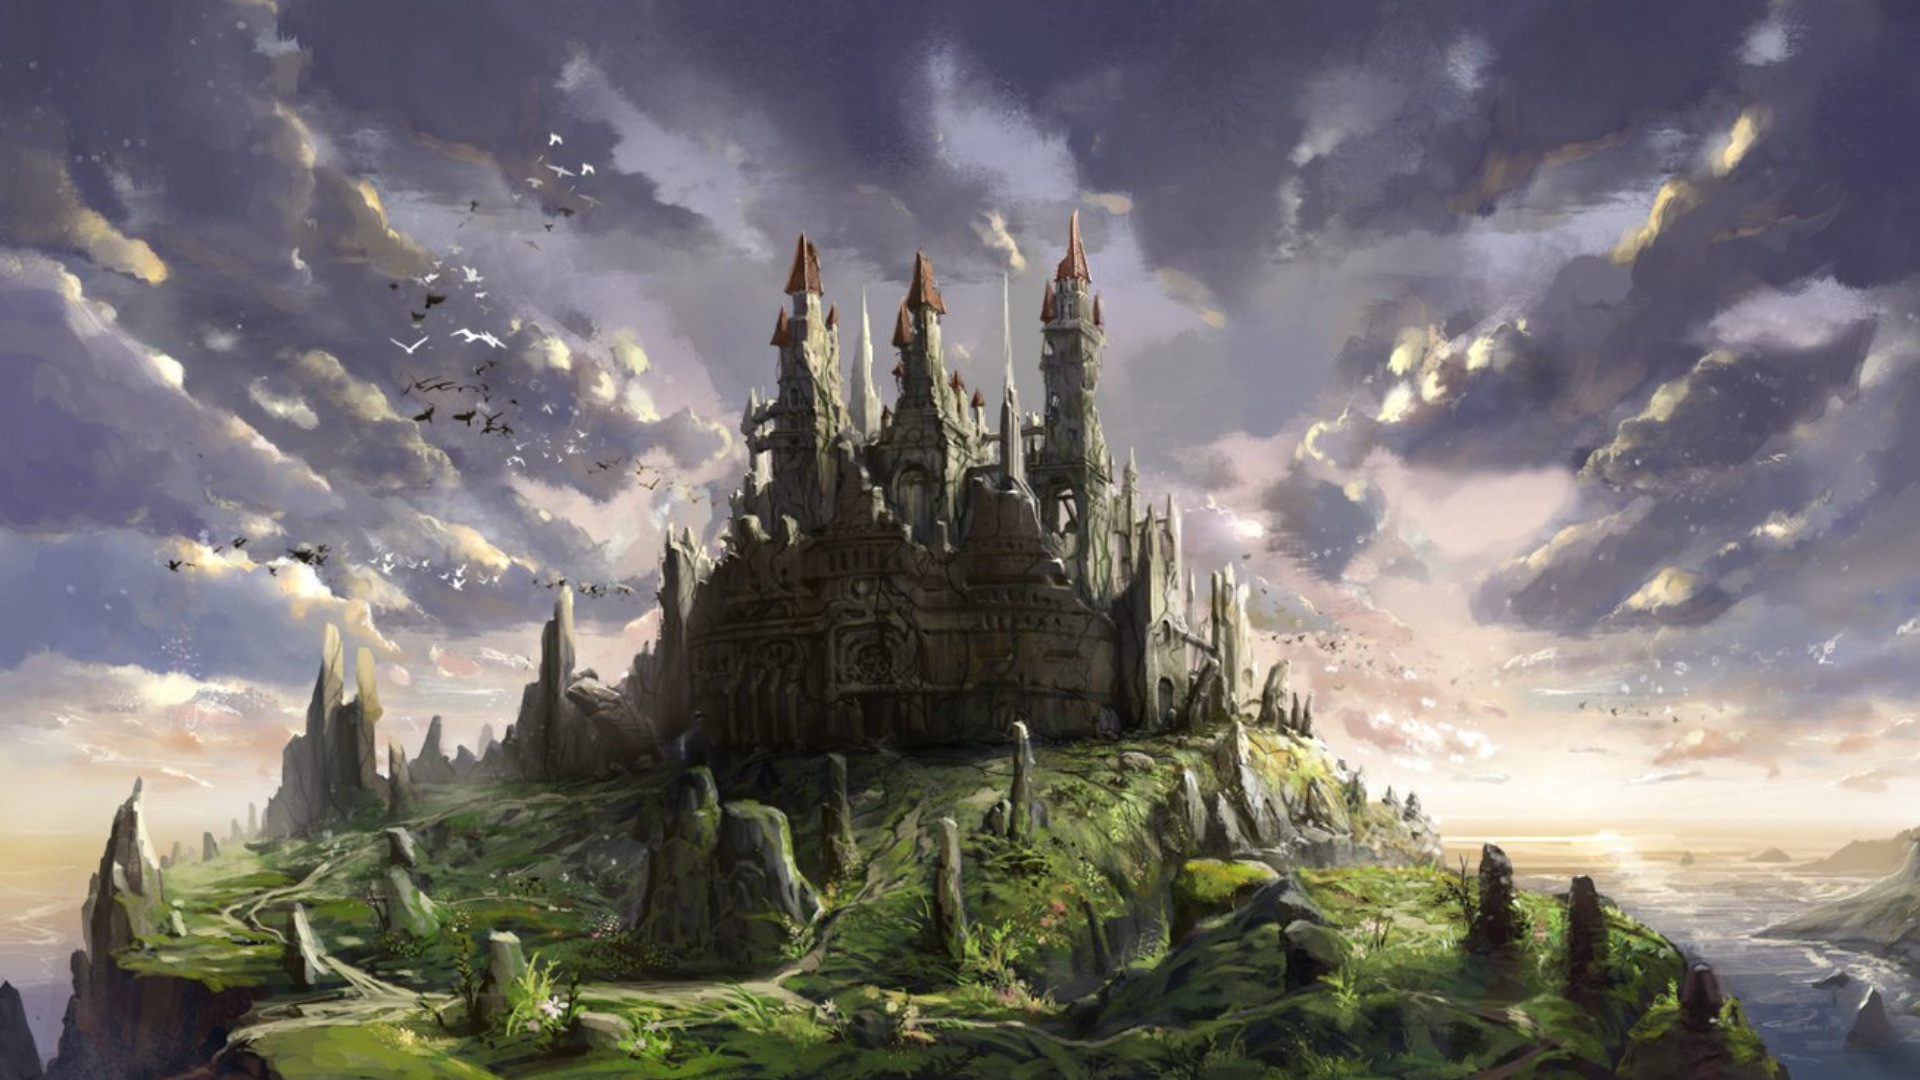 Fantasy Castle Wallpaper Free With Wallpapers Wide Resolution px  418.51 KB